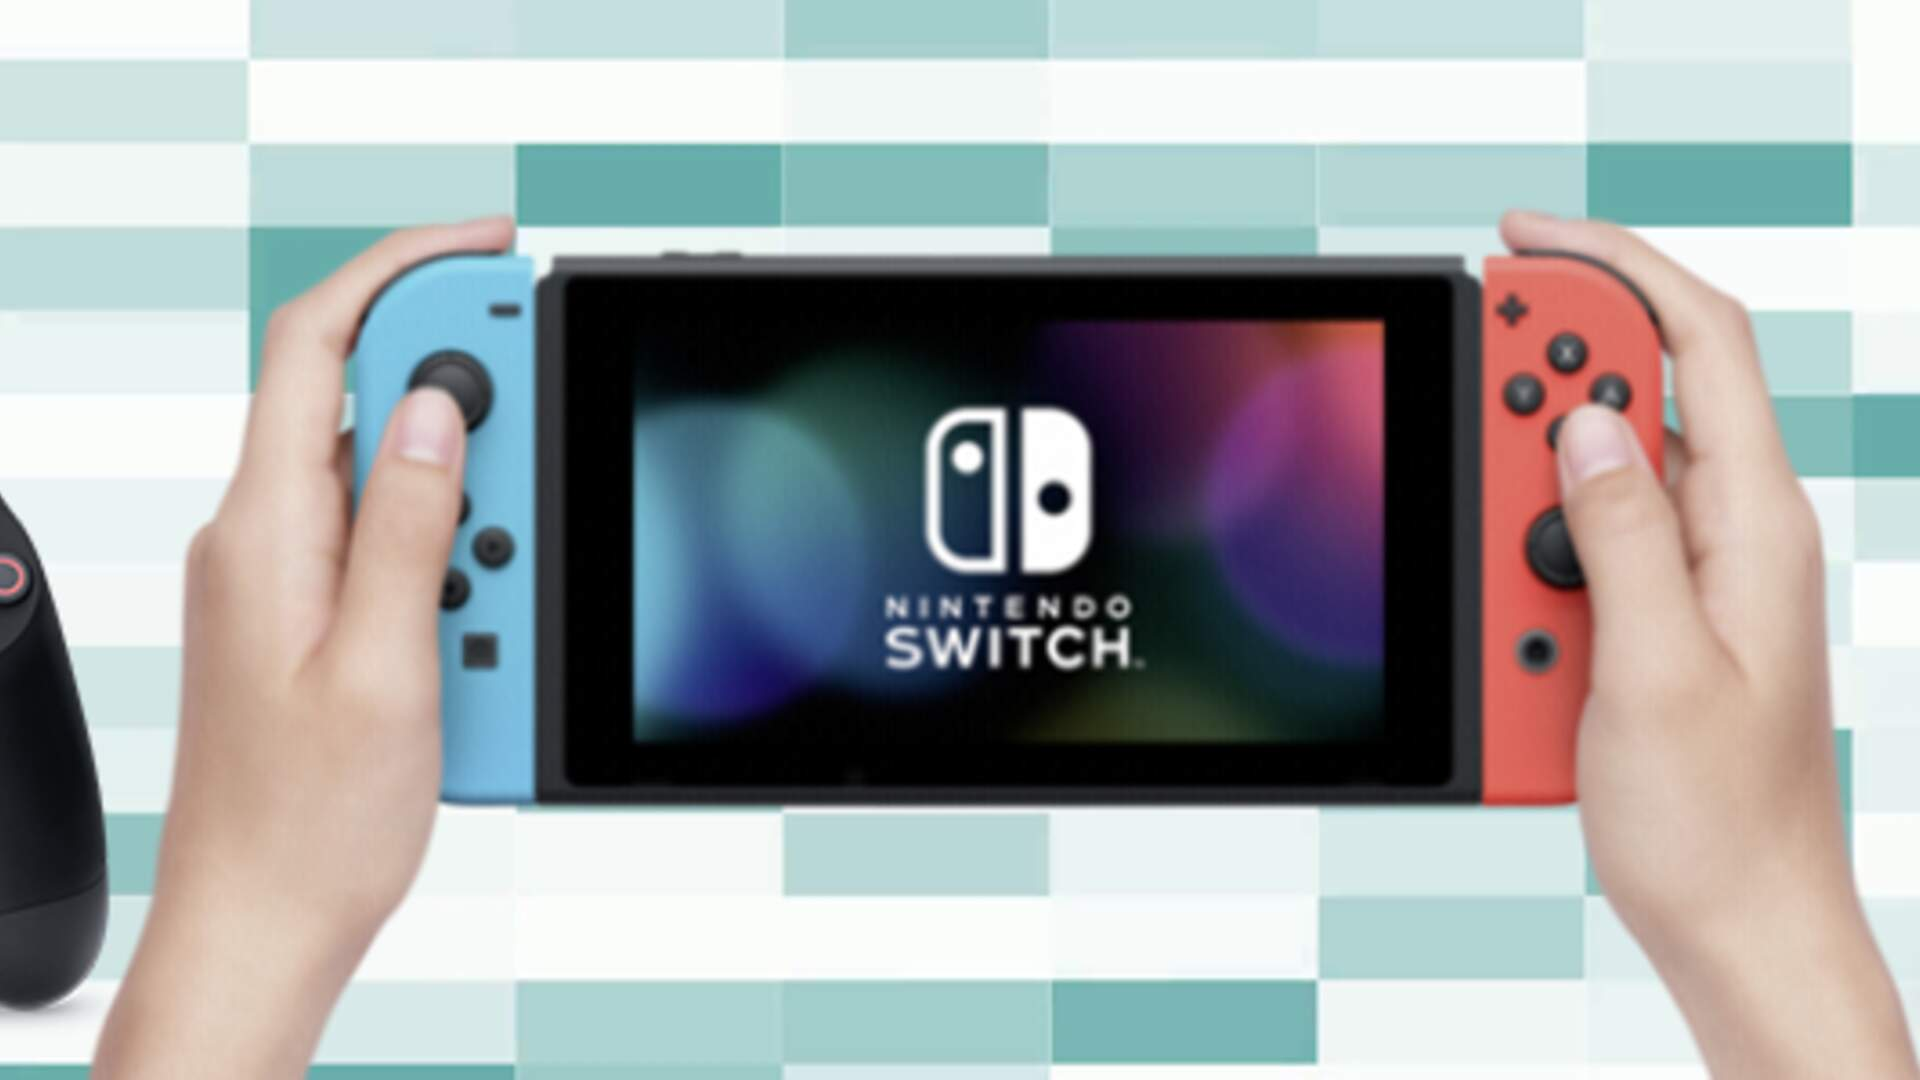 Best Price Nintendo Switch How To Get The Cheapest Nintendo Switch Usgamer